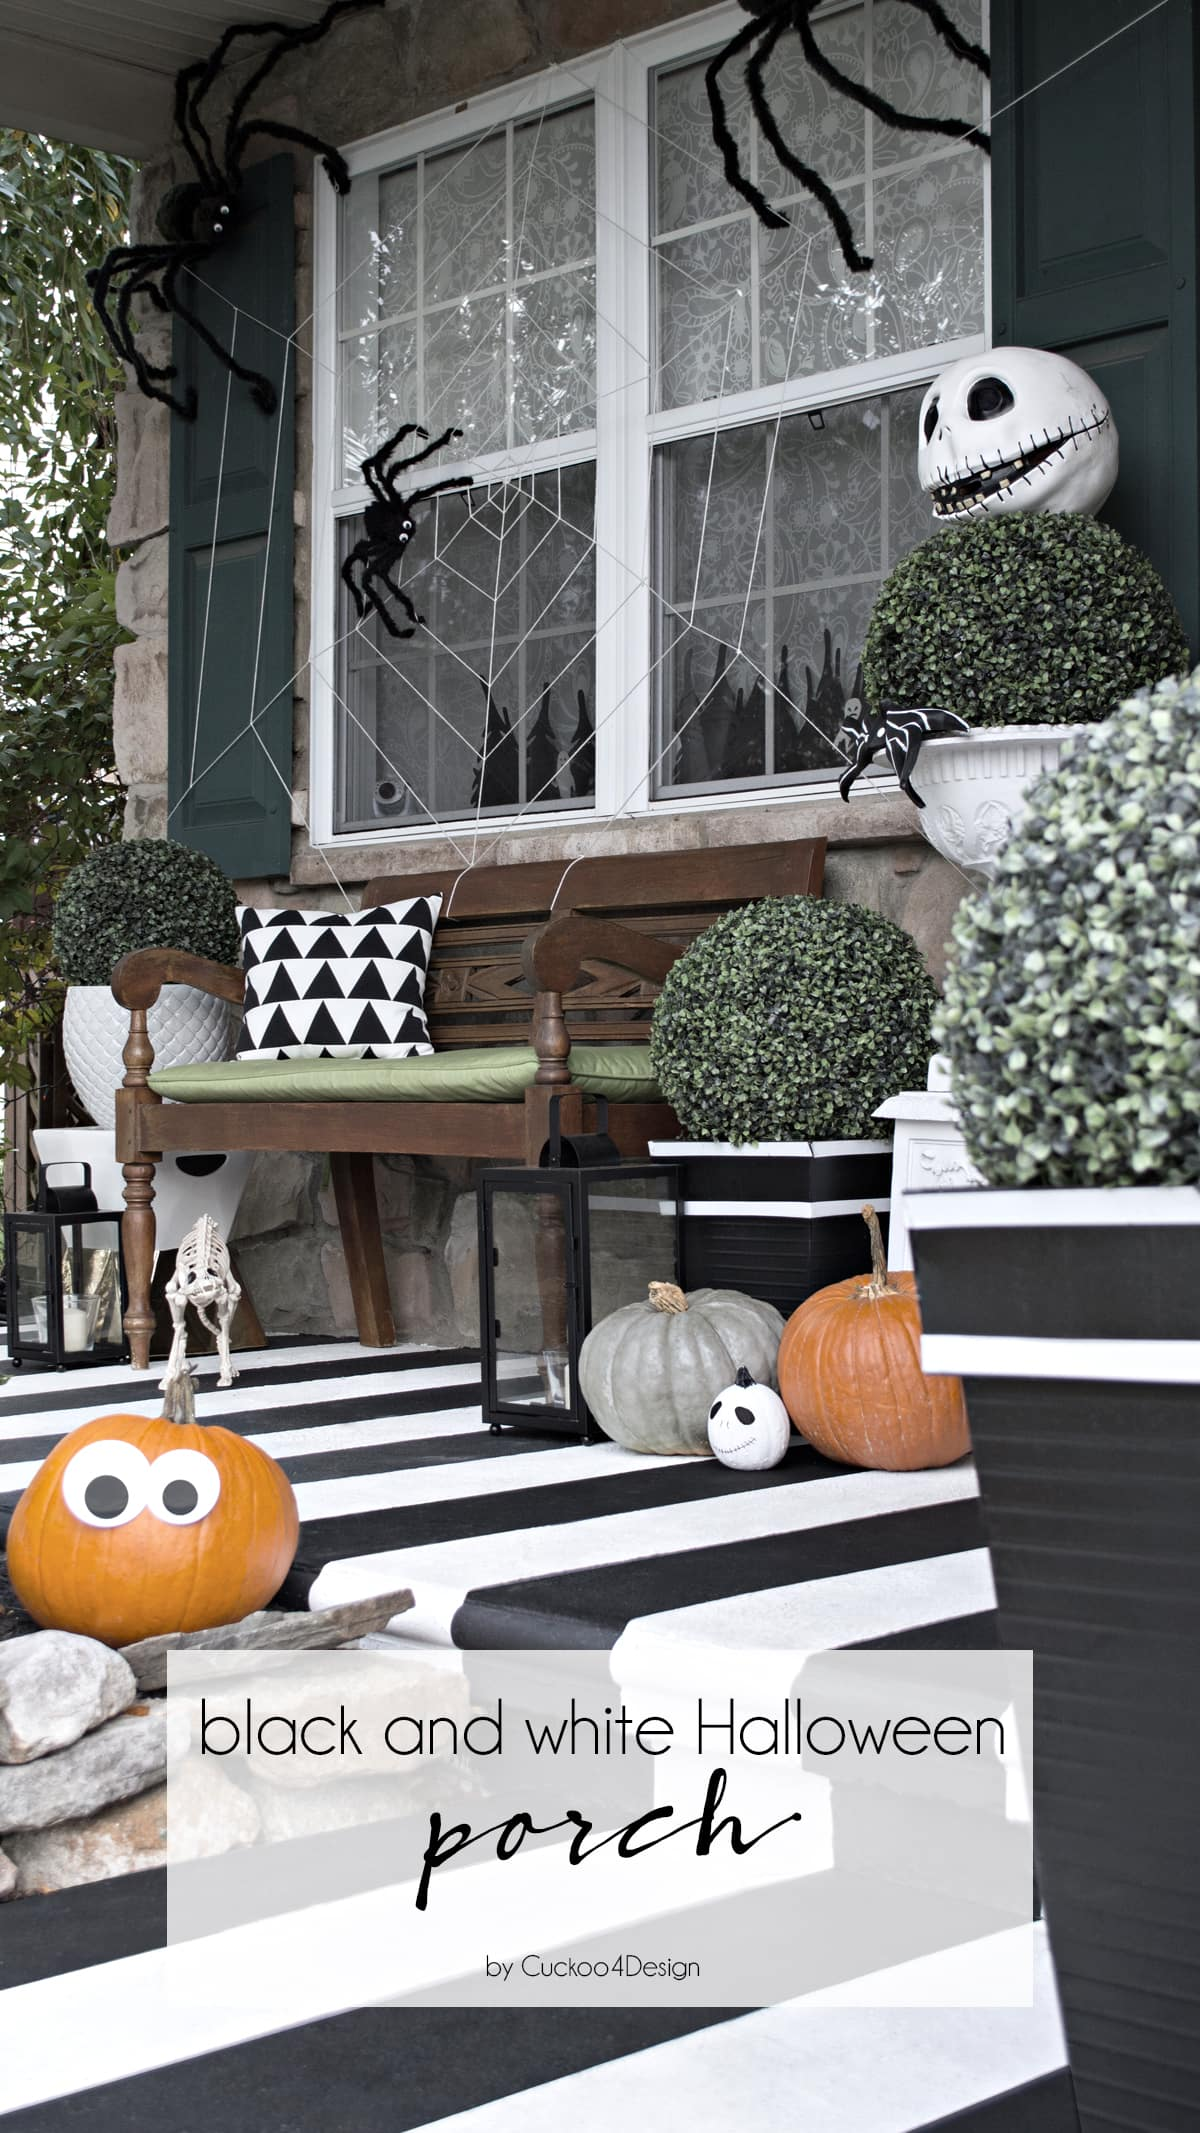 black and white Halloween decor for our front porch